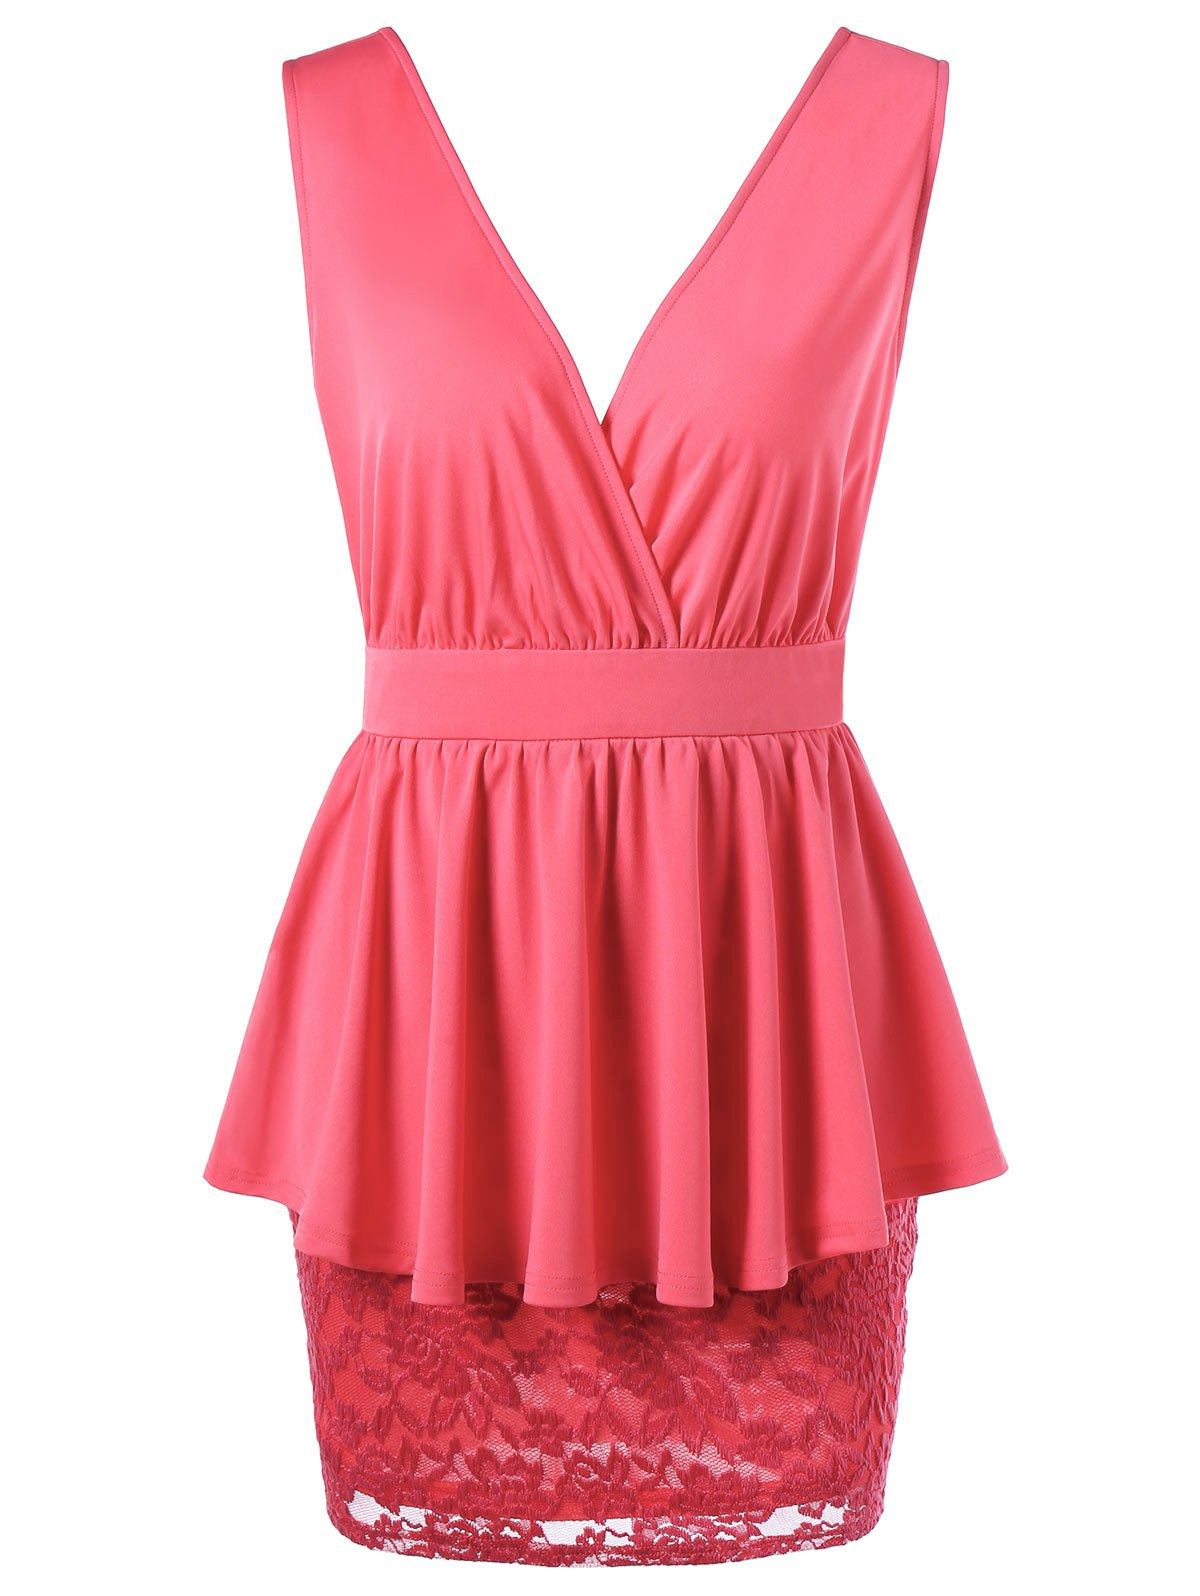 Crossover Lace Peplum Dress - WATERMELON RED XL